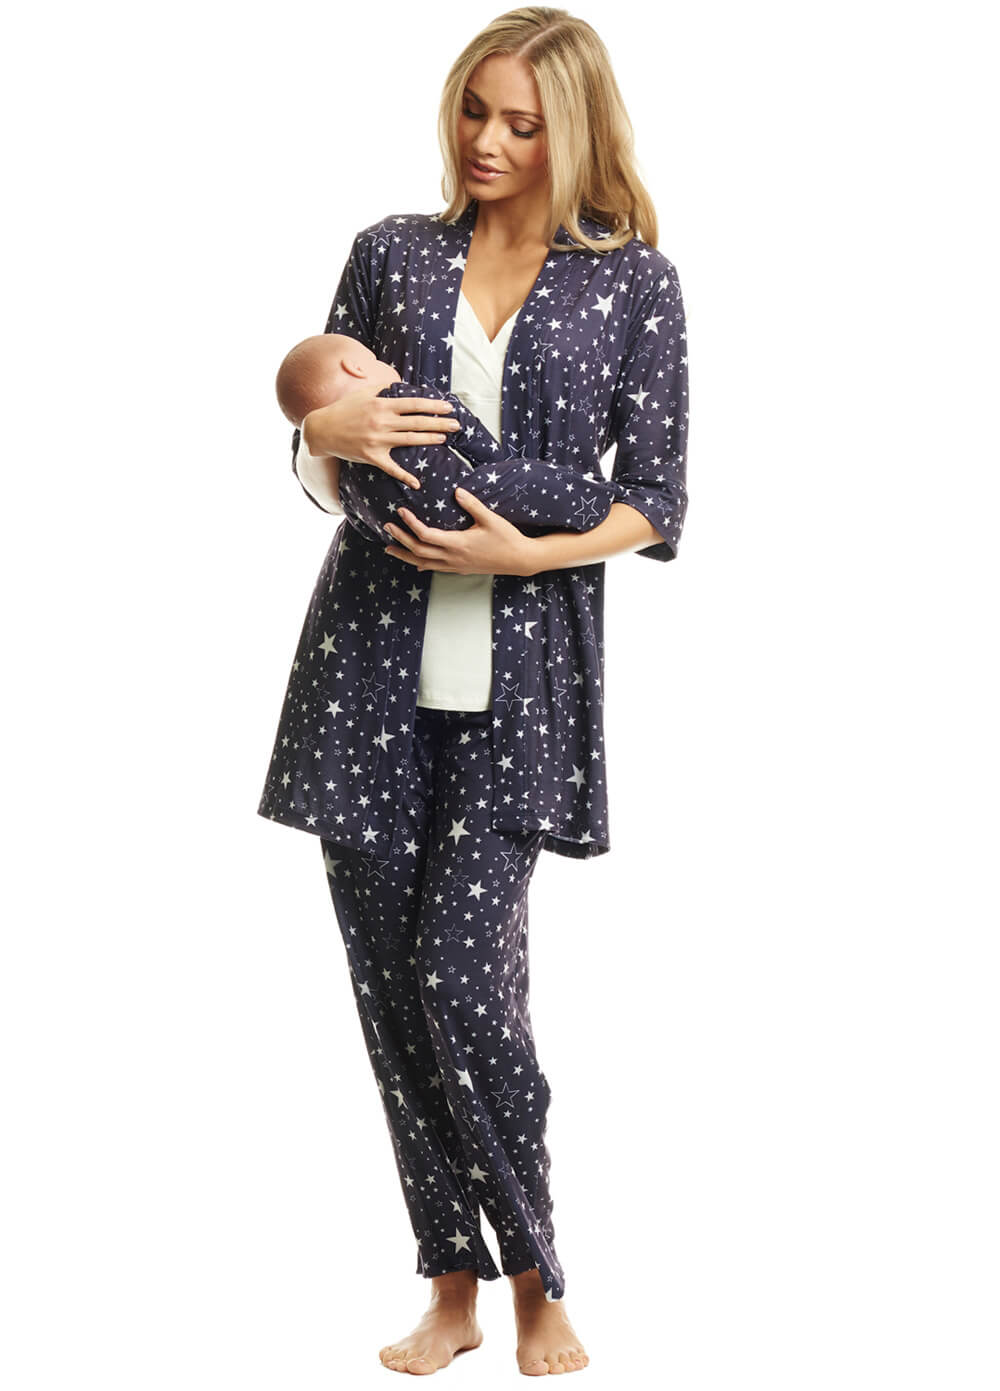 Queen Bee Analise Mommy & Me PJ Gift Set in Navy Stars by Everly Grey